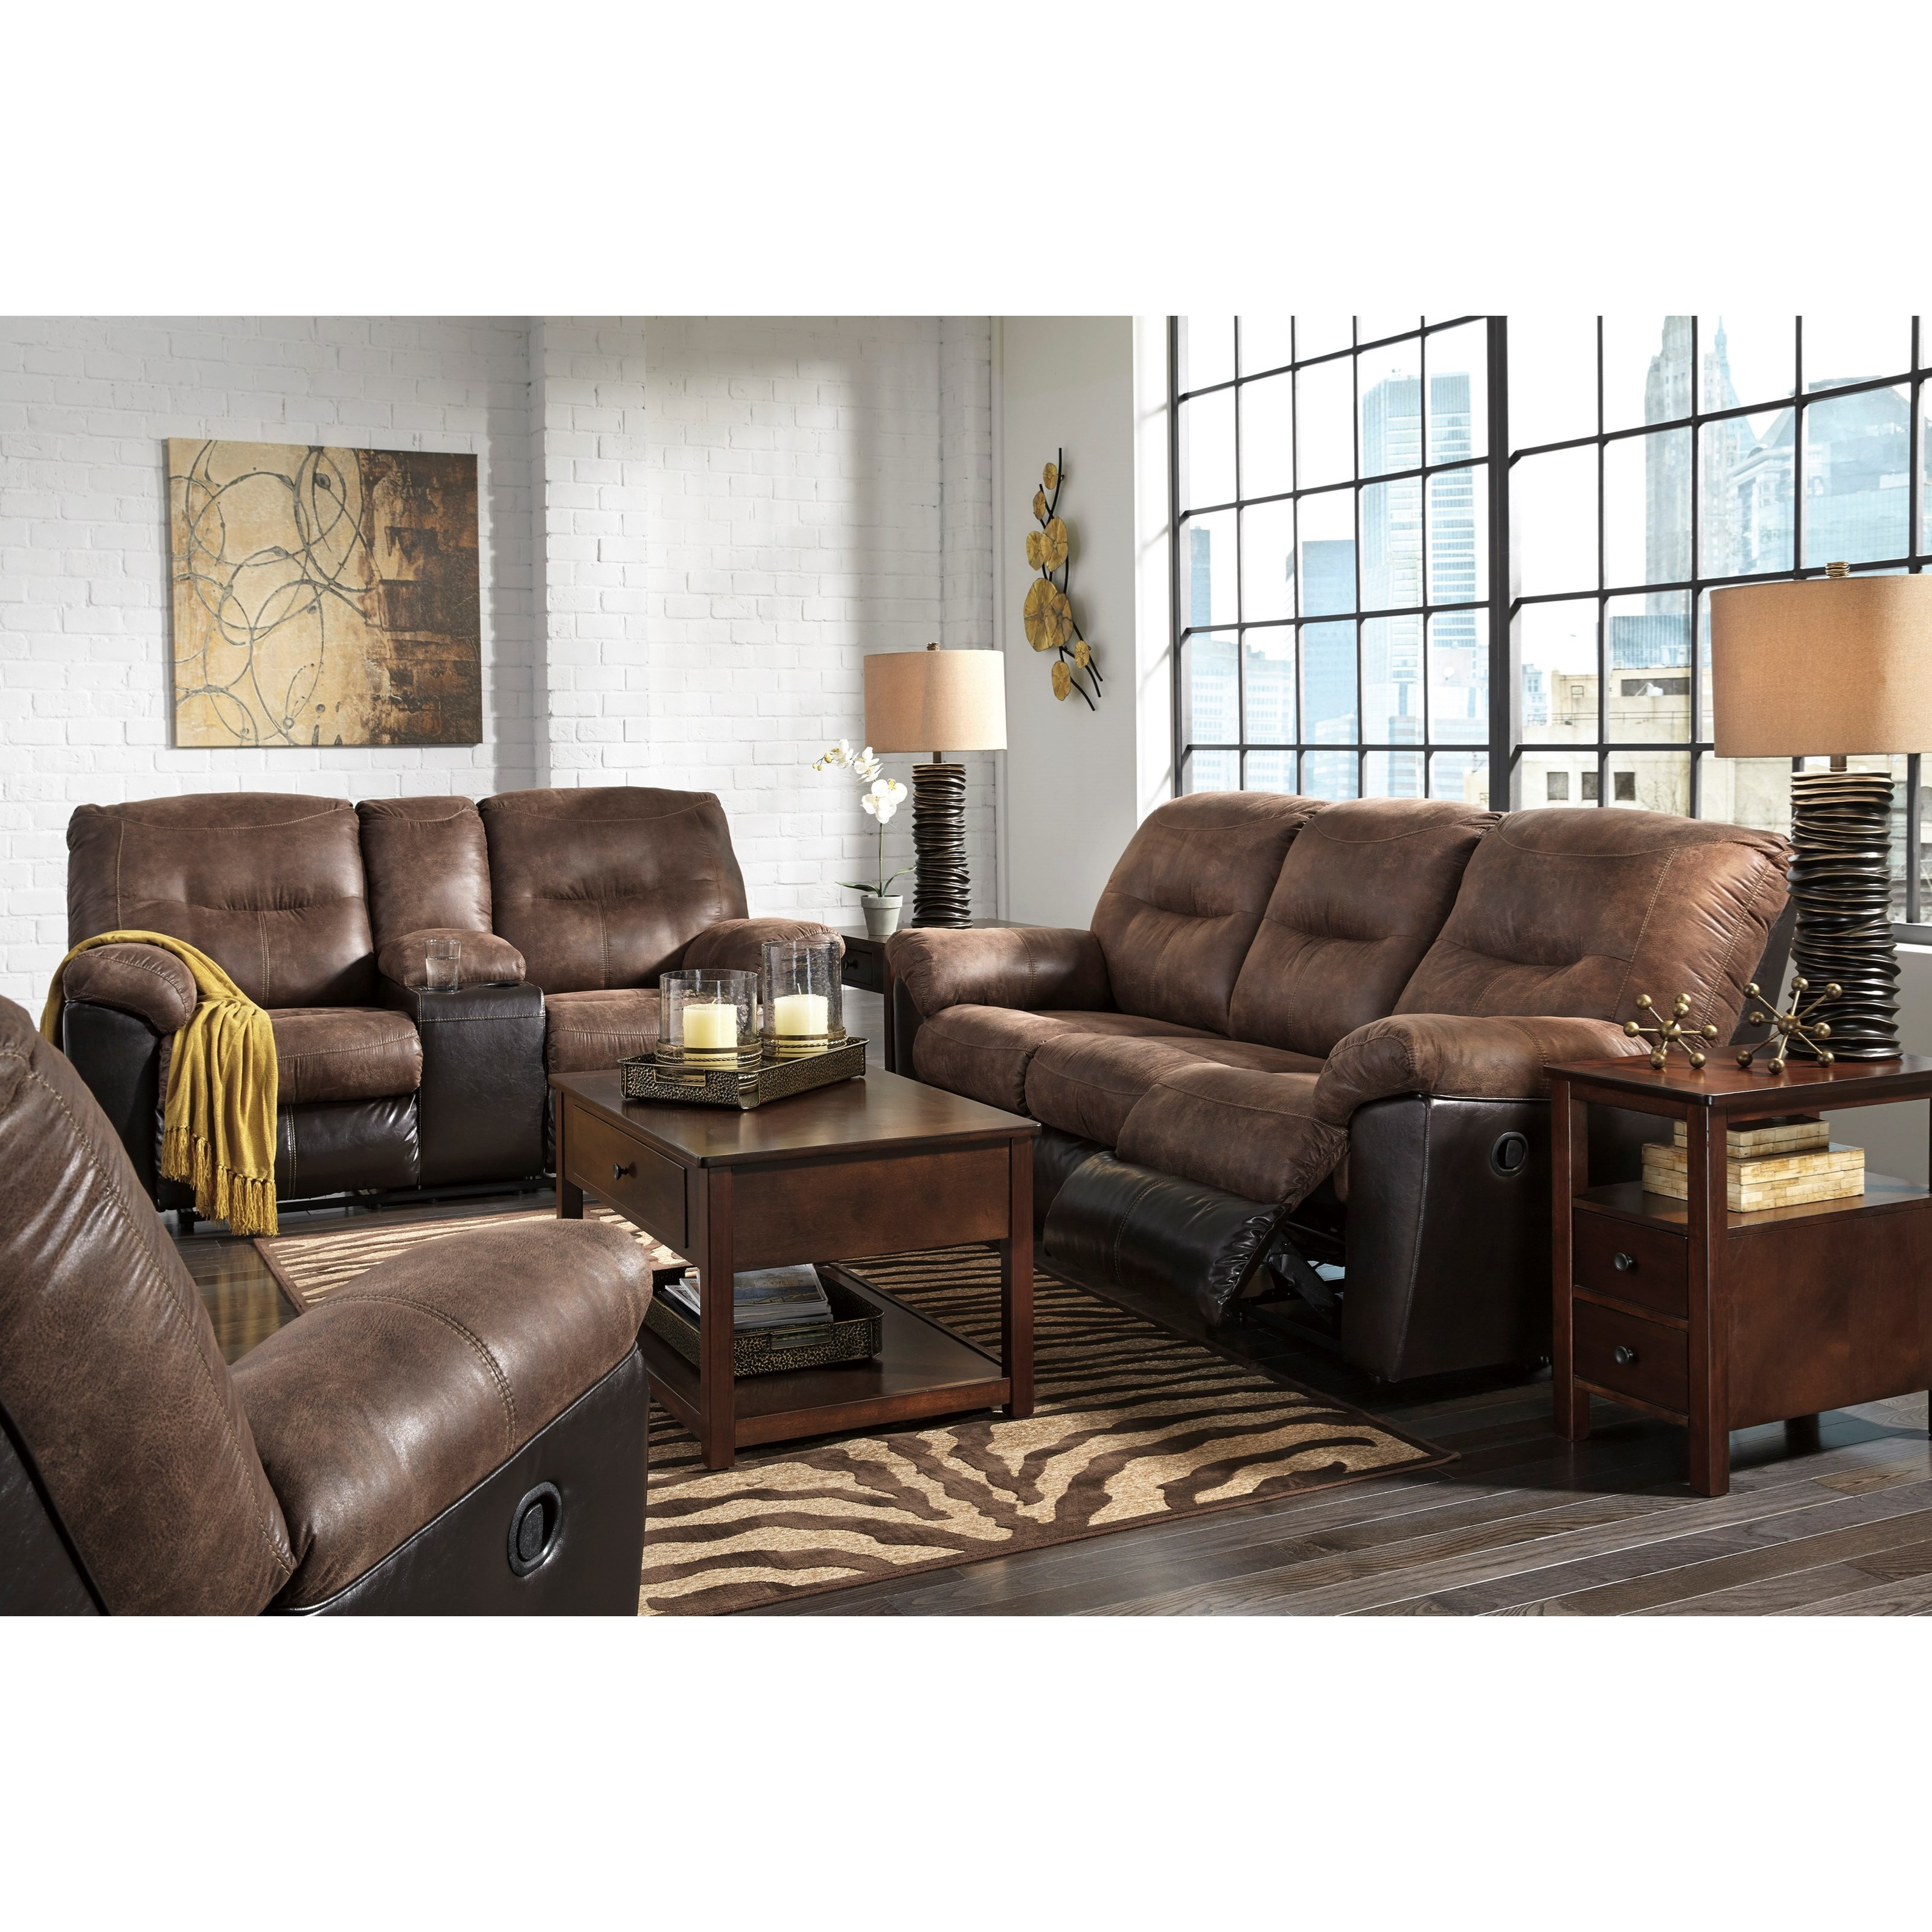 Signature design by ashley follett two tone faux leather reclining sofa royal furniture Badcock home furniture more winchester tn